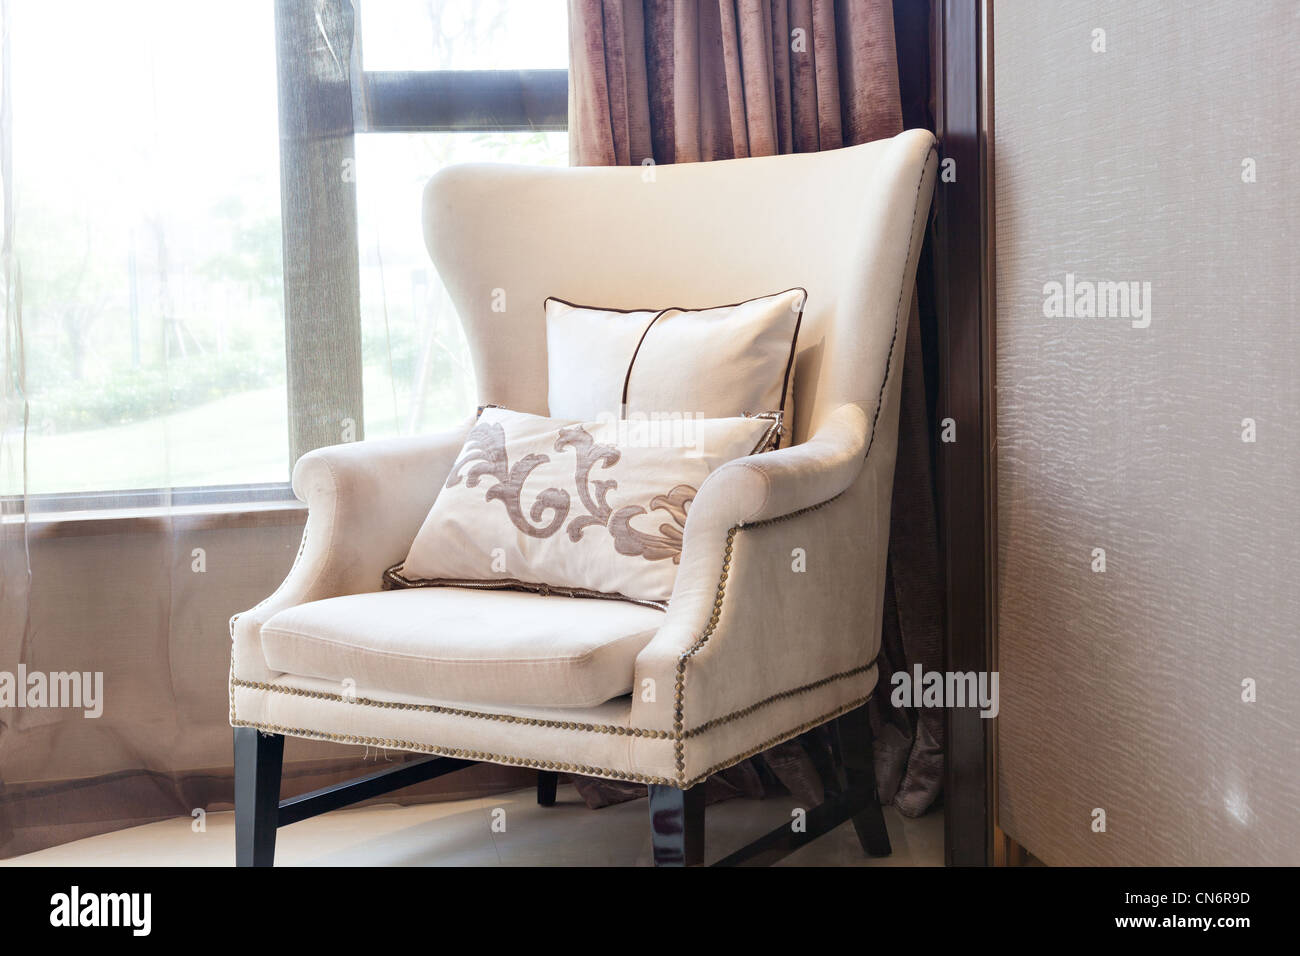 Armchair close to the window at a new interiors - Stock Image